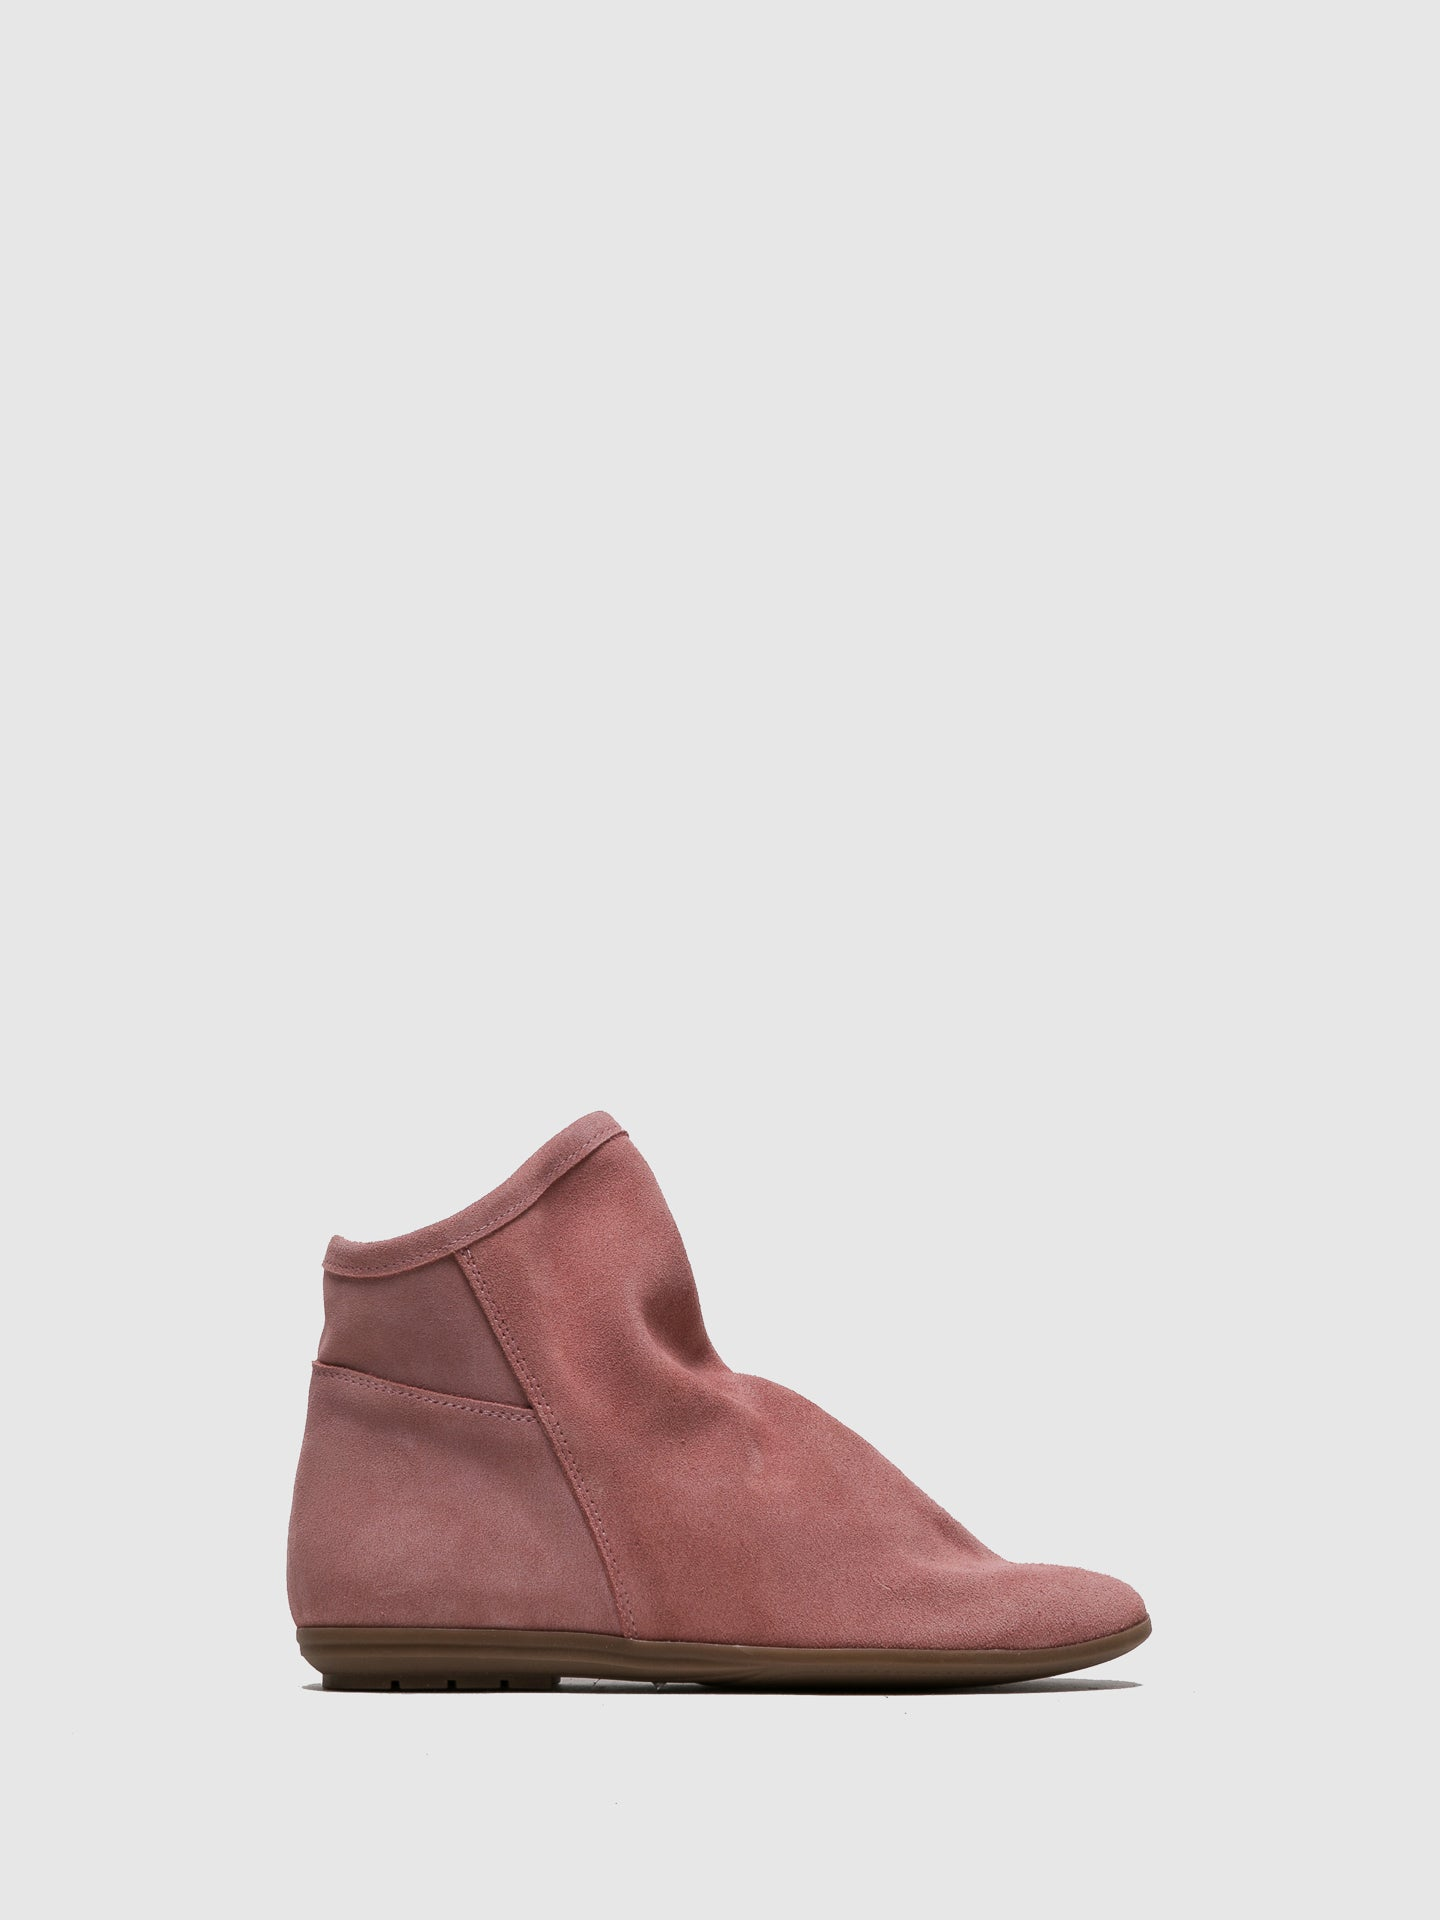 Sotoalto Pink Round Toe Ankle Boots